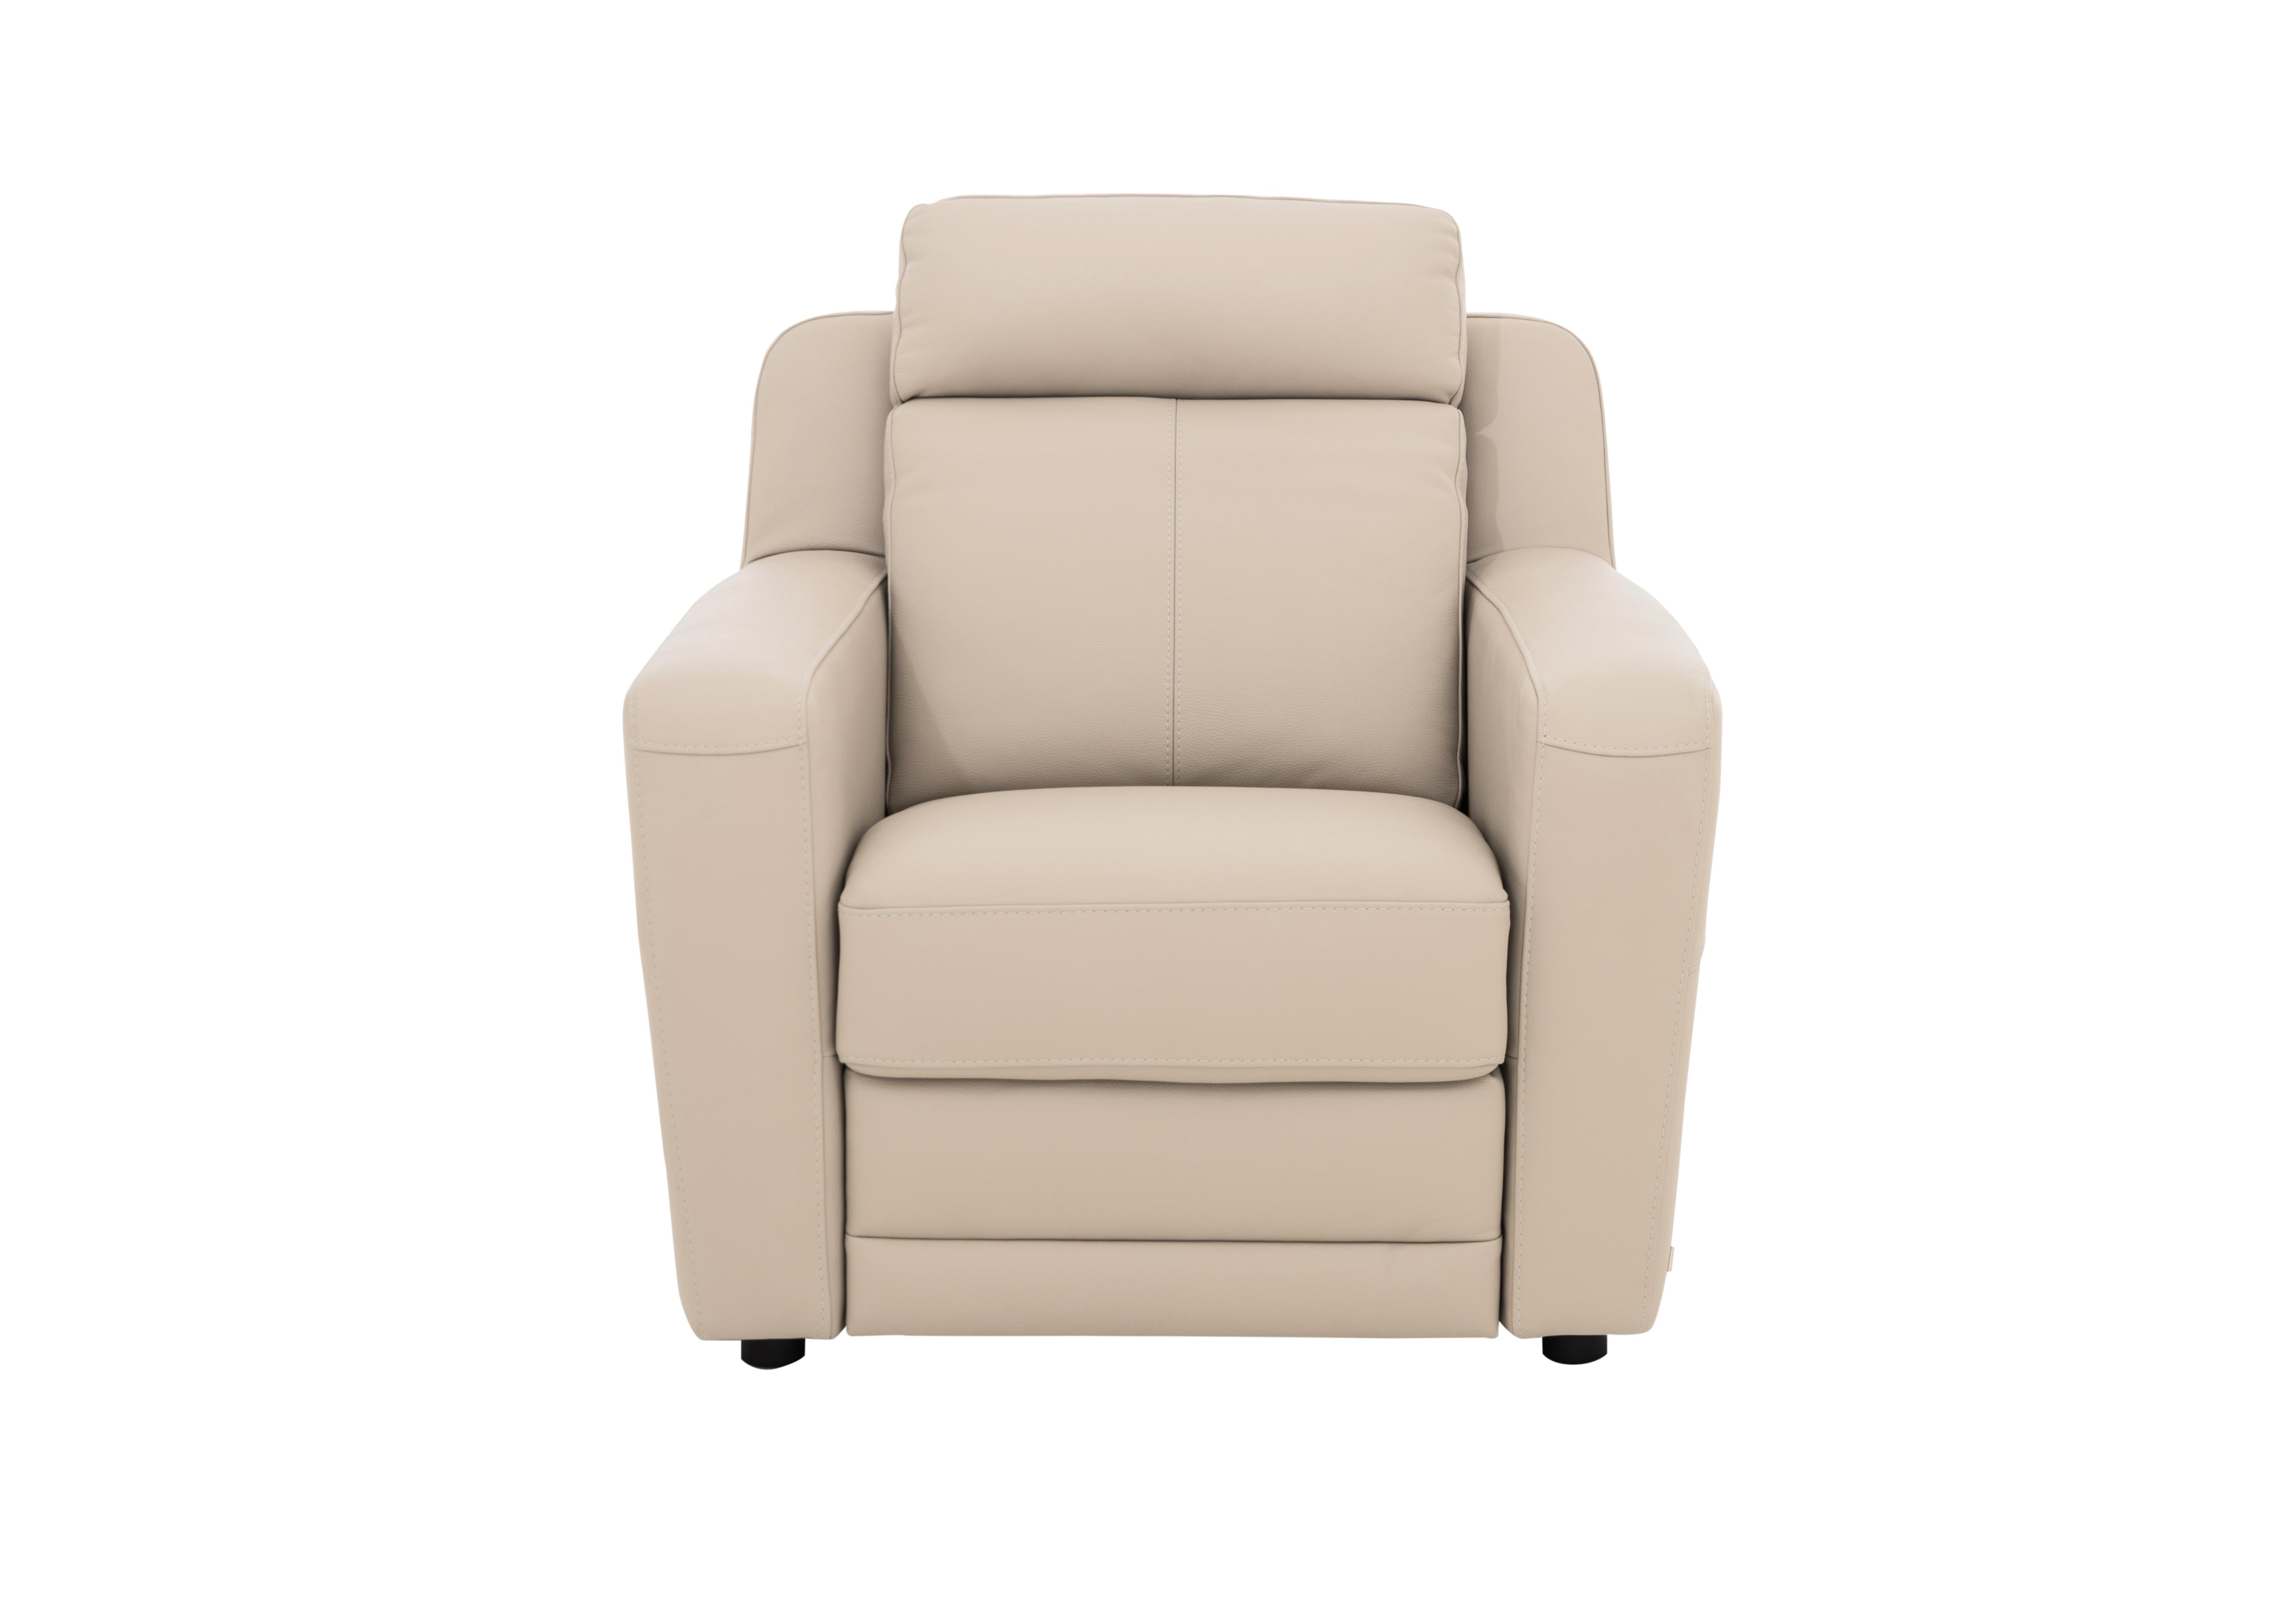 Lucano Leather Power Recliner Armchair With Power Headrest